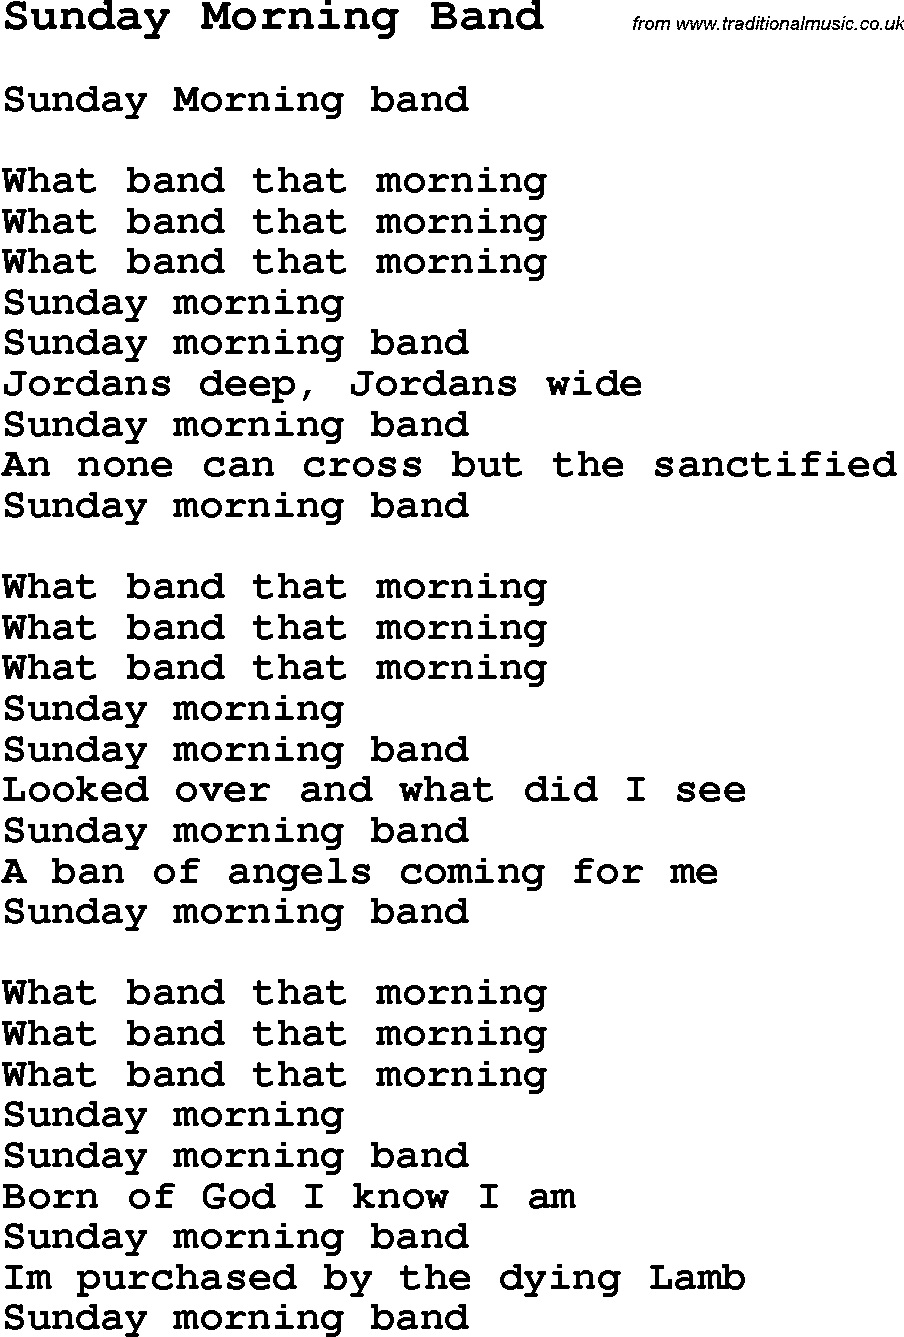 Download sunday morning band as pdf file for printing etc